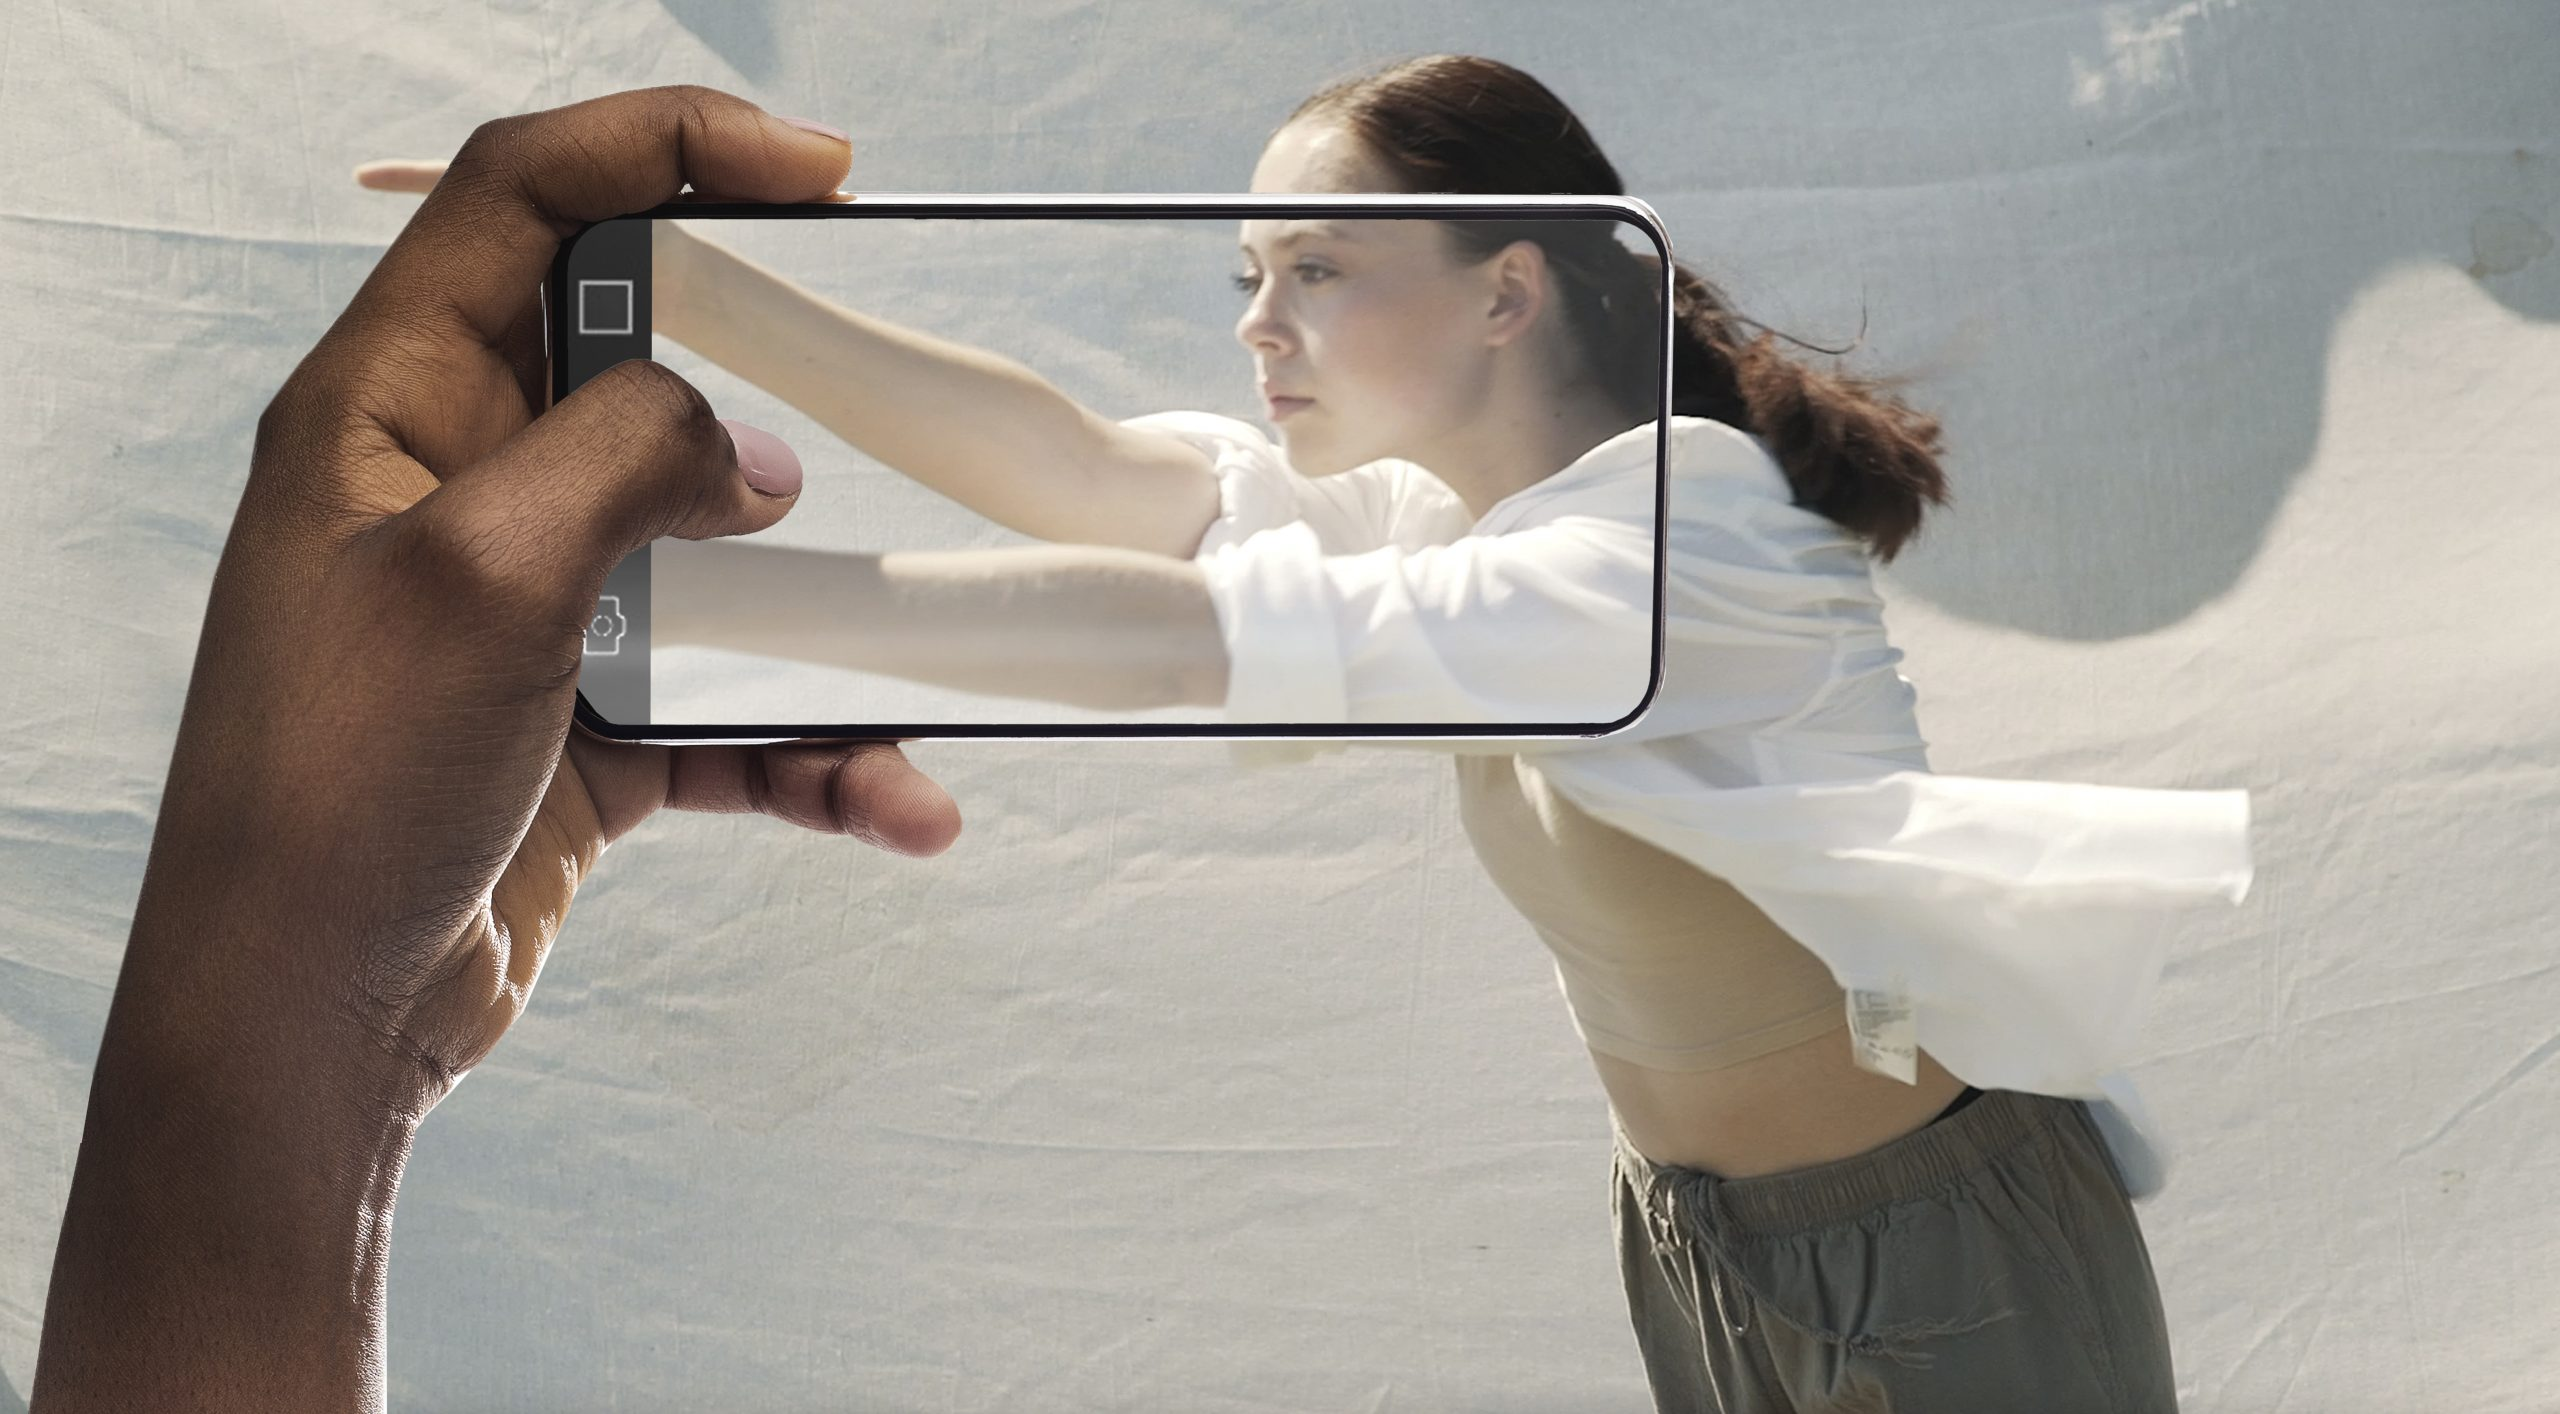 A girl in a white shirt reaches out against a pale background while a hand holds a mobile phone up to capture it